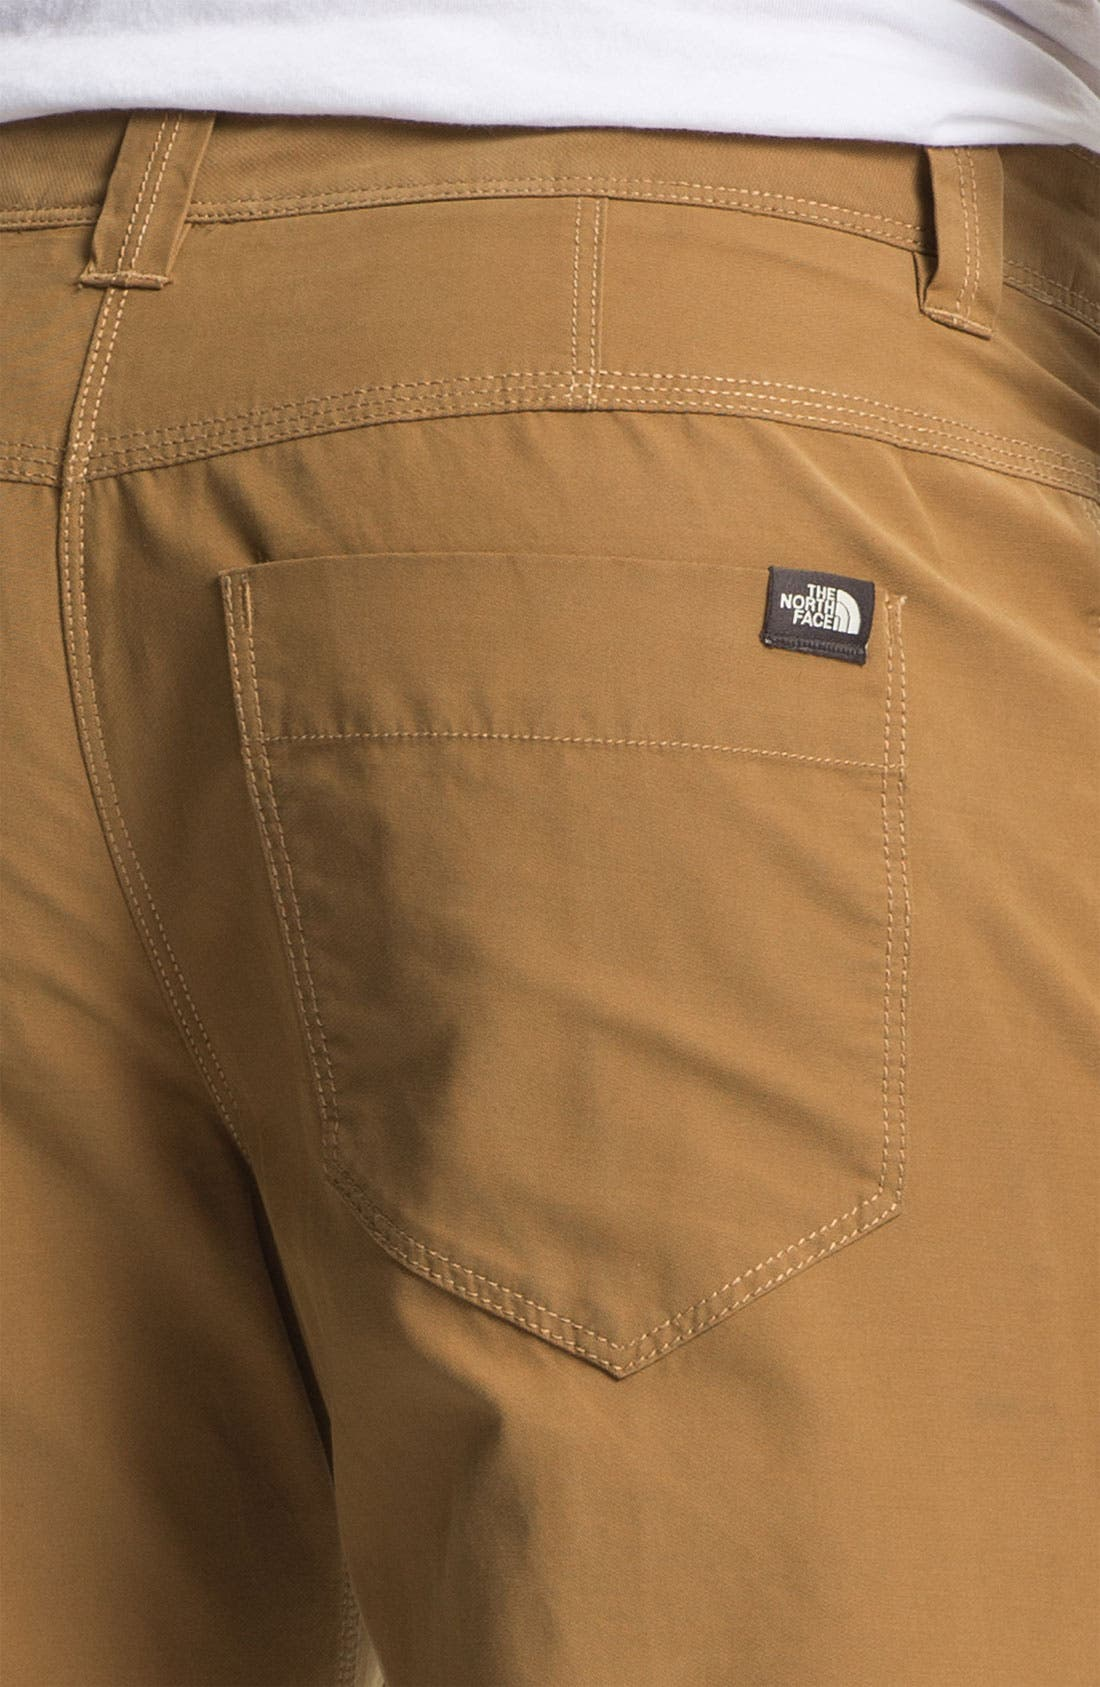 Alternate Image 3  - The North Face 'Granite Dome' Pants